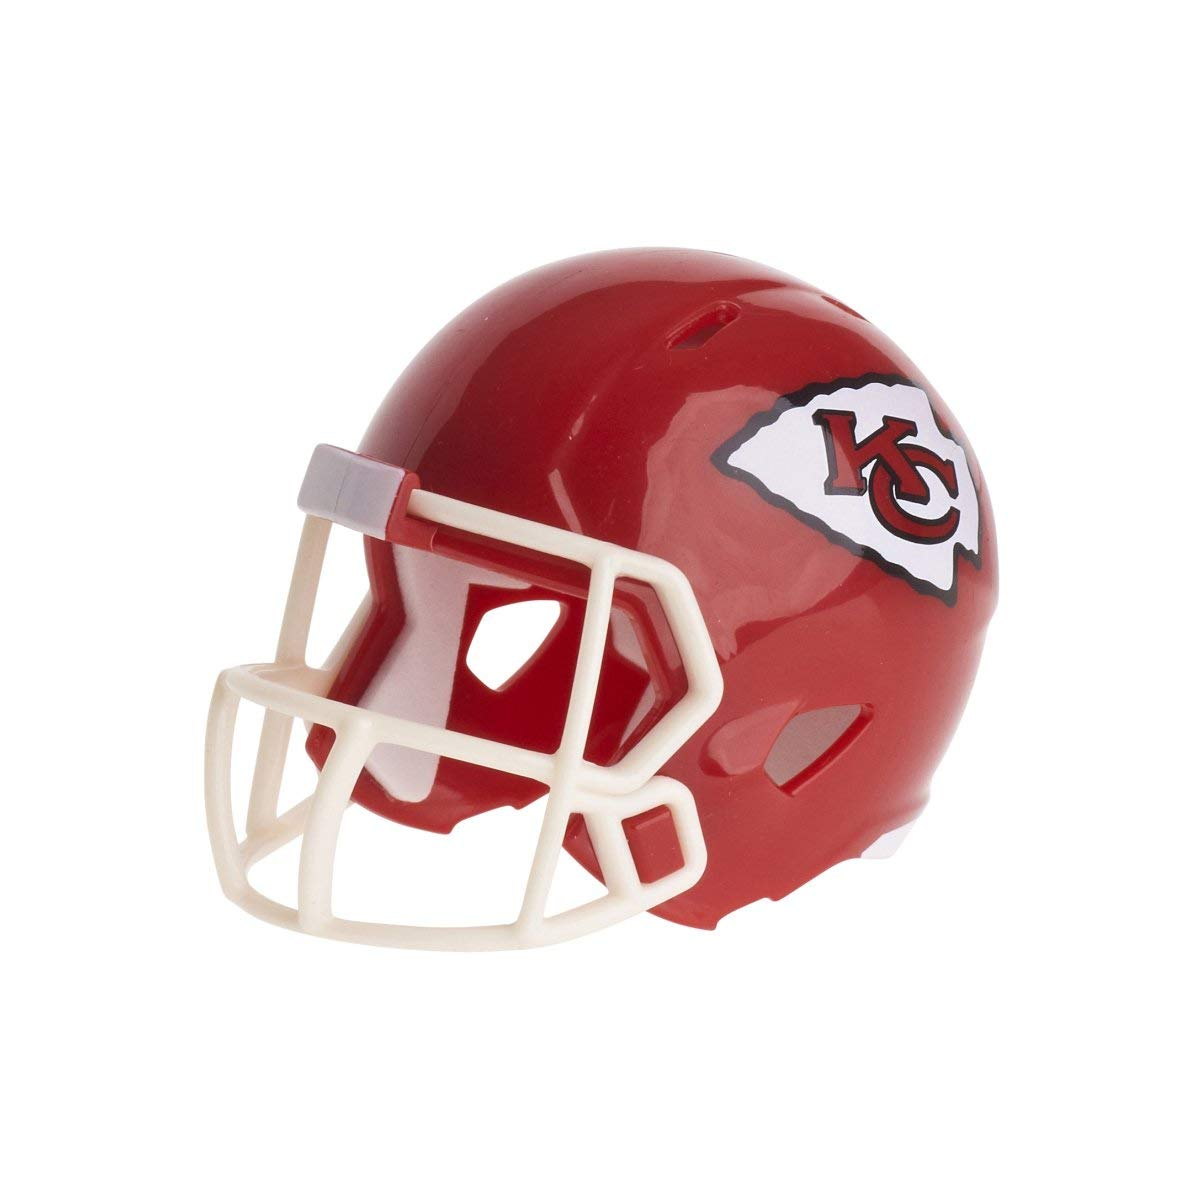 Riddell Mini-American-Football-Helm, NFL-Team: Kansas City Chiefs, im Taschenformat, Speed Pocket 095855320625